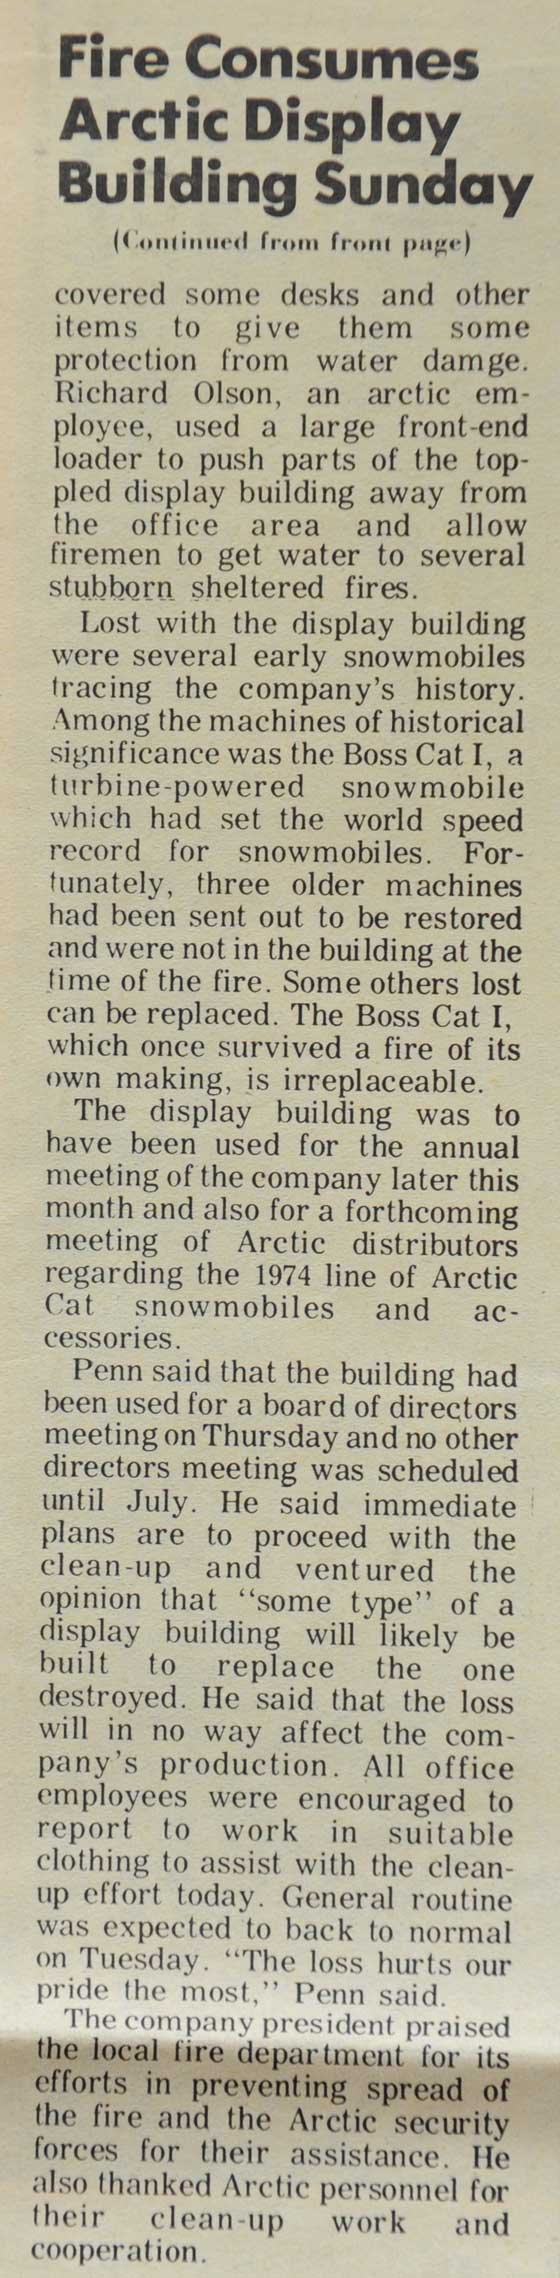 Arctic Cat Display Building Fire in 1973